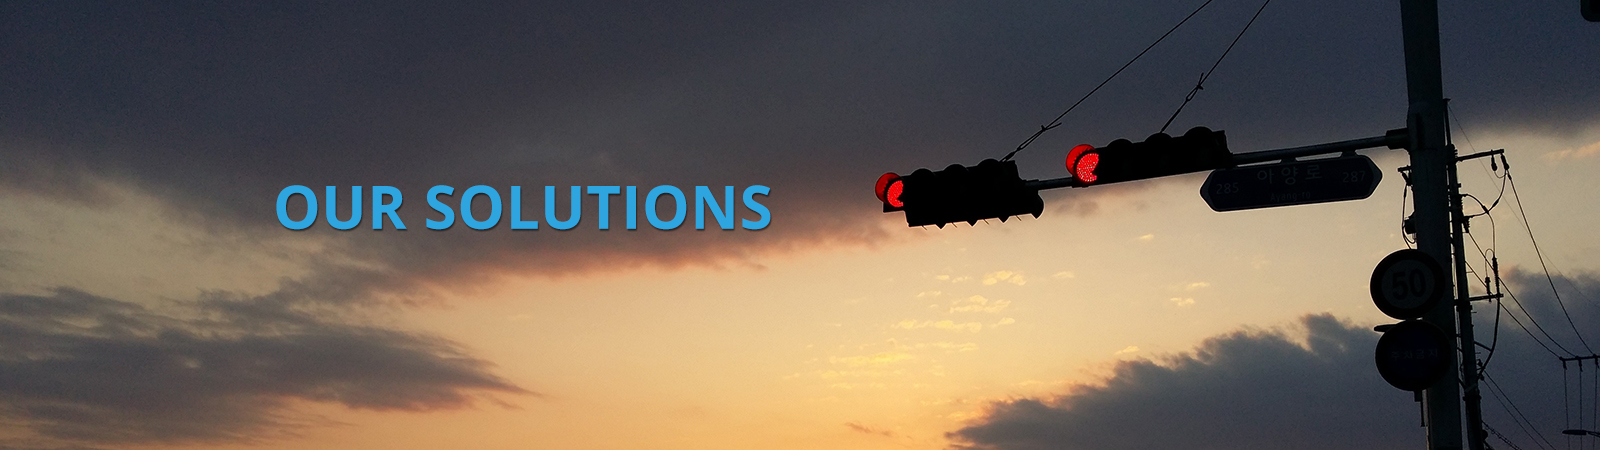 traffic signal lights manufacturers | led traffic light | solar traffic light